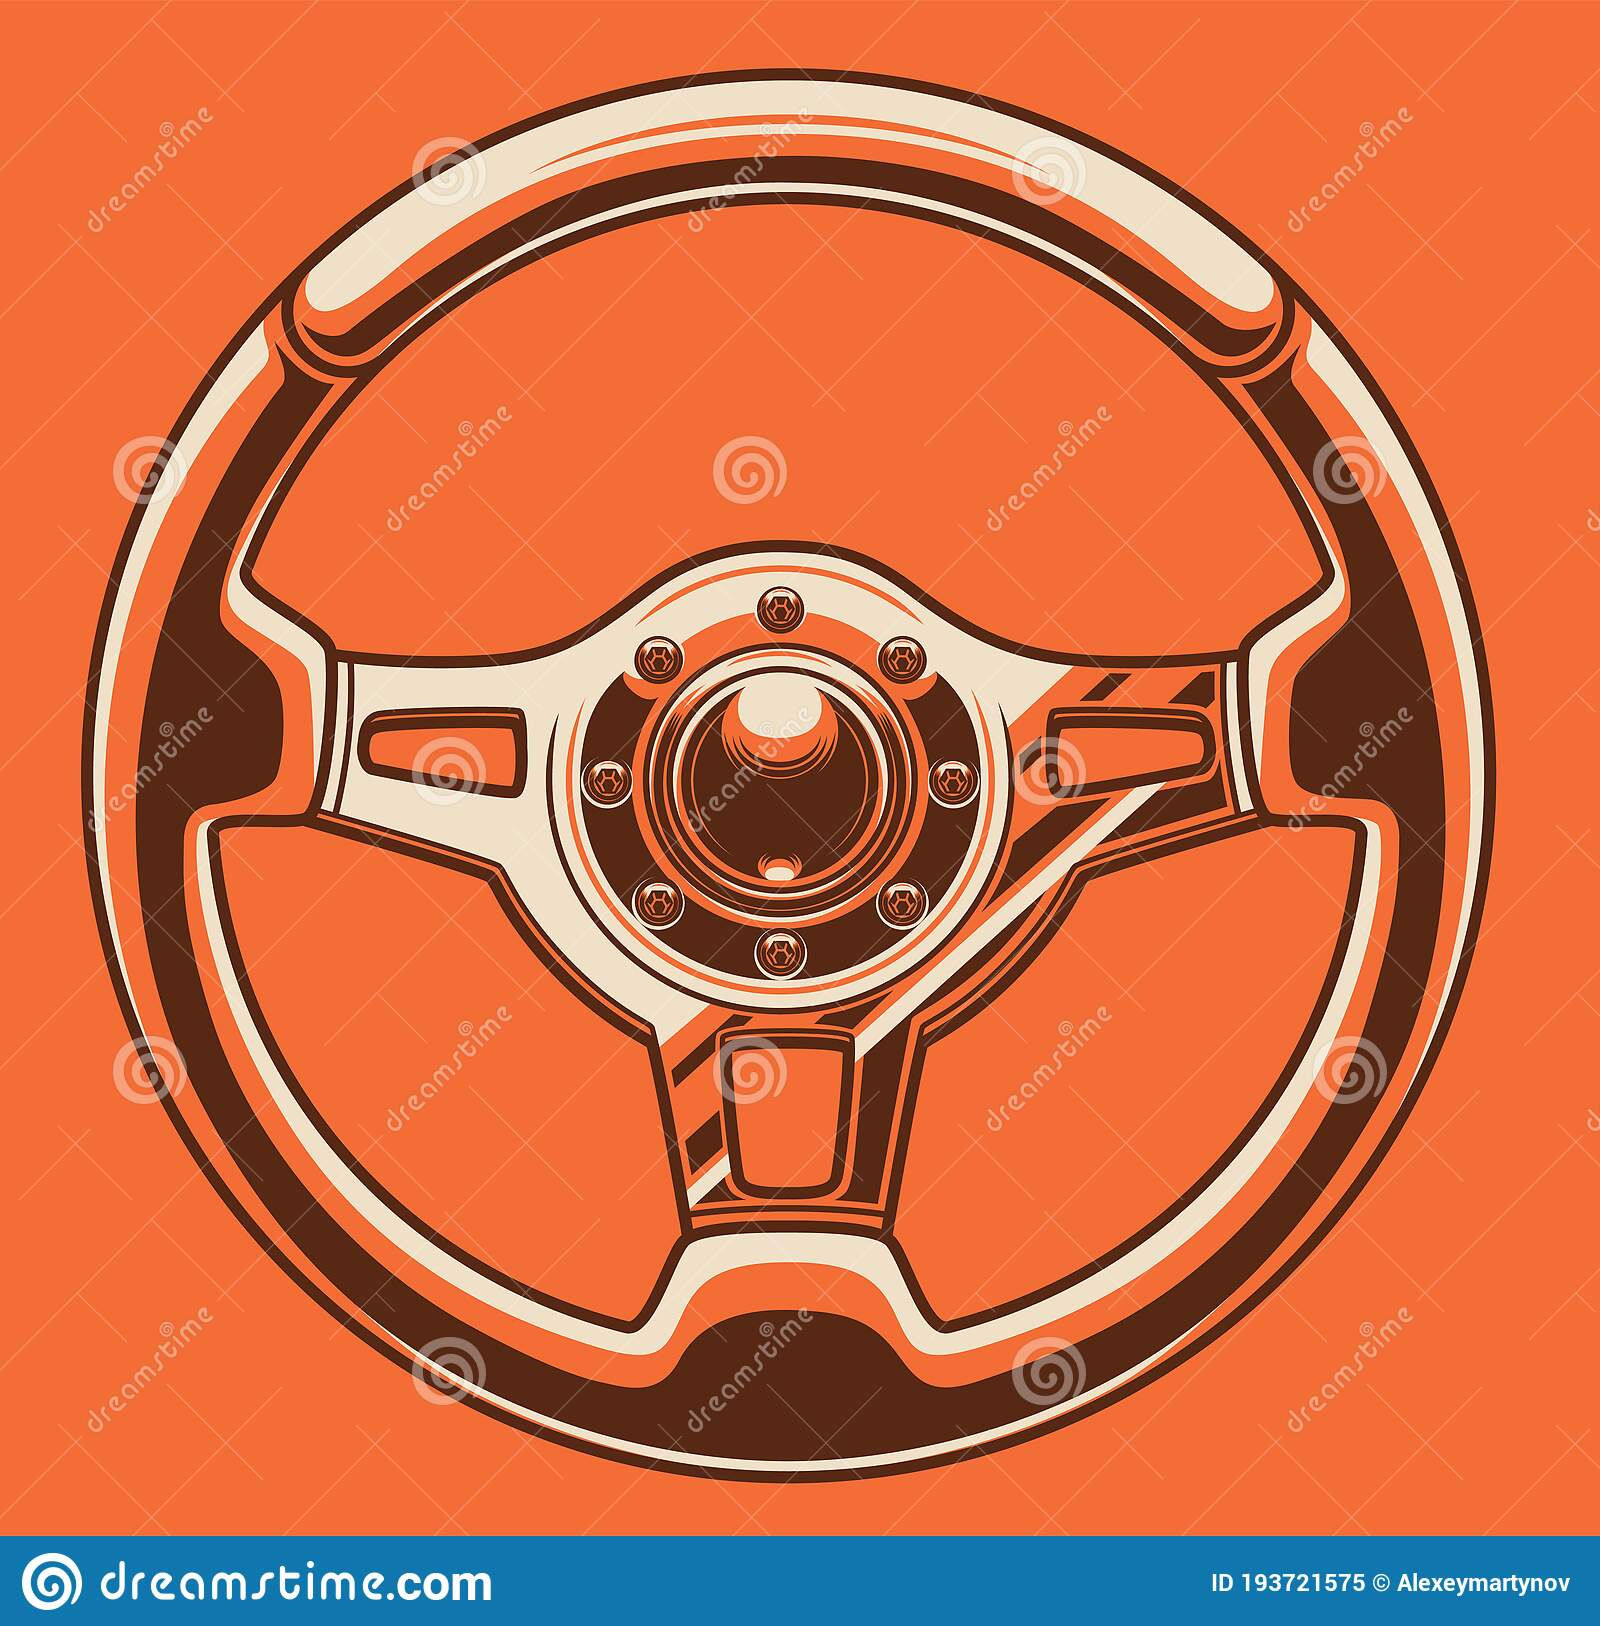 Sport Car Steering Wheel Art Stock Vector Illustration Of Competition Control 193721575